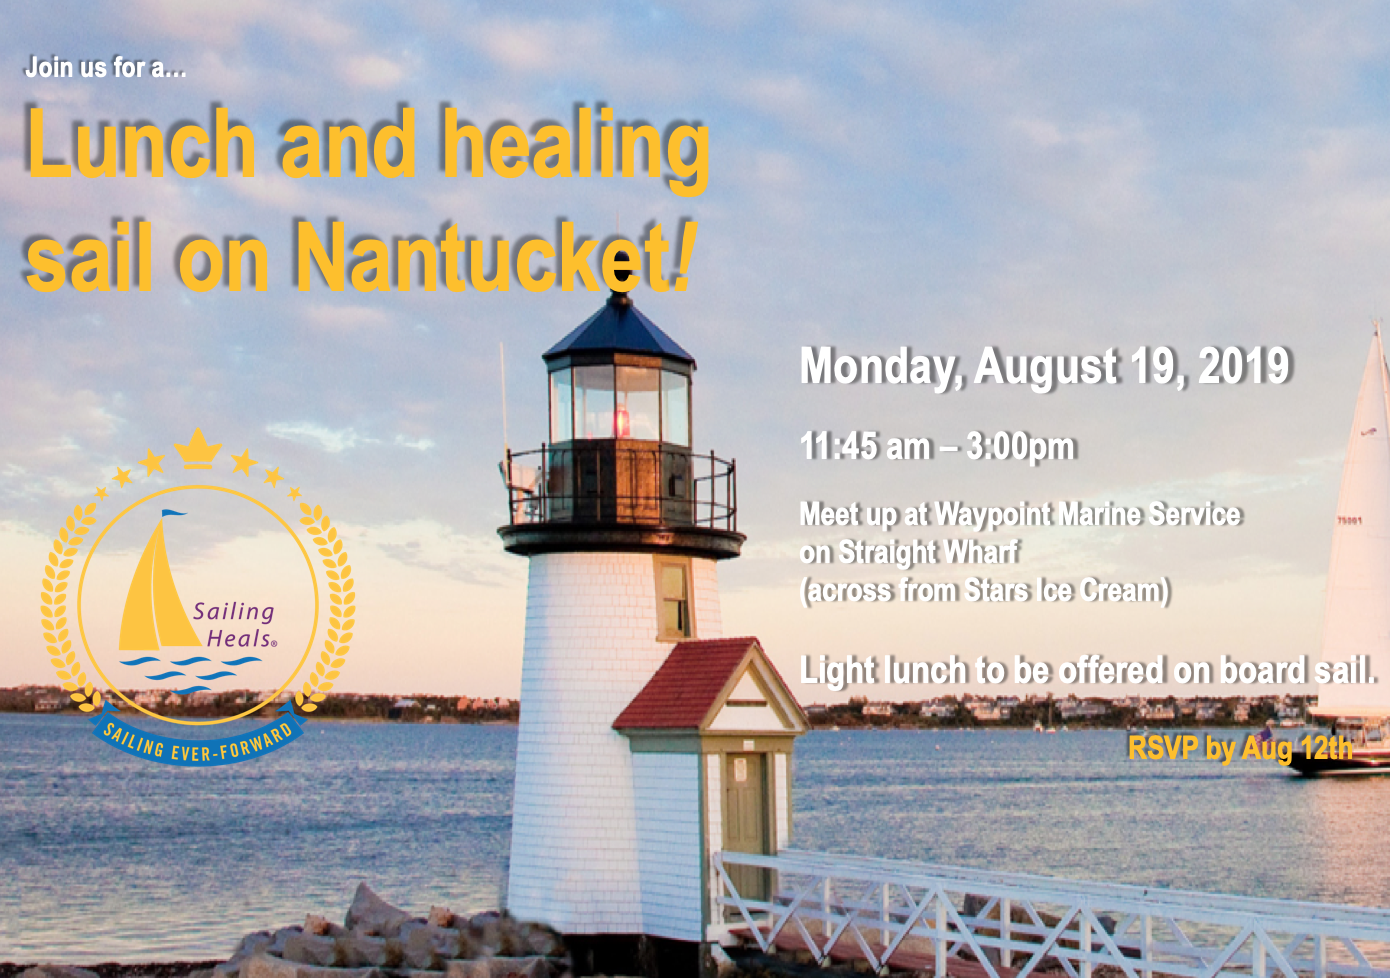 8.19.19 Nantucket lunch and healing sail